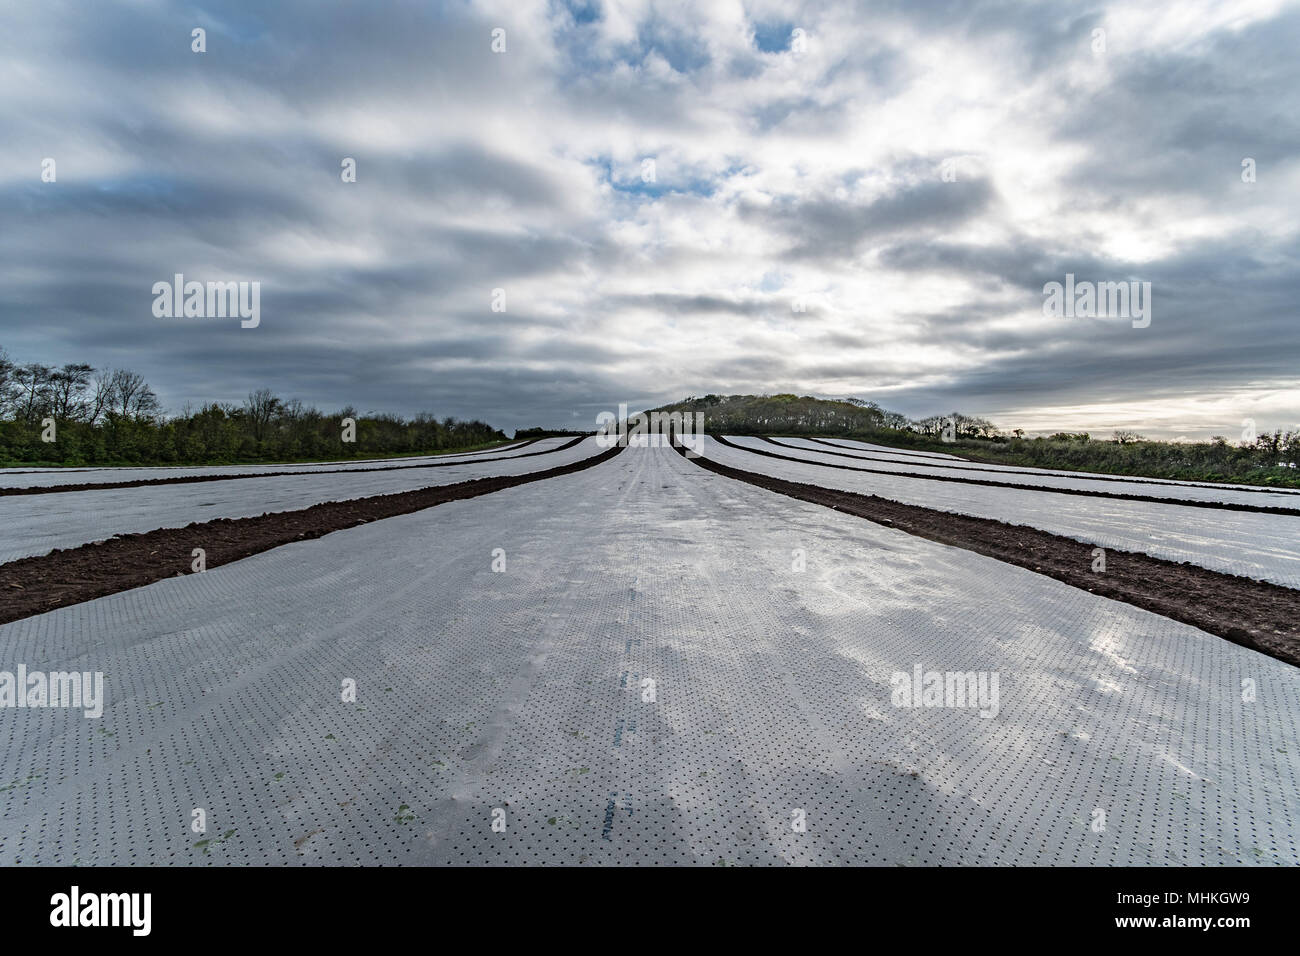 Protective film covering crops of young cabbage in spring, long perspective shot with moody cloudy sky. - Stock Image